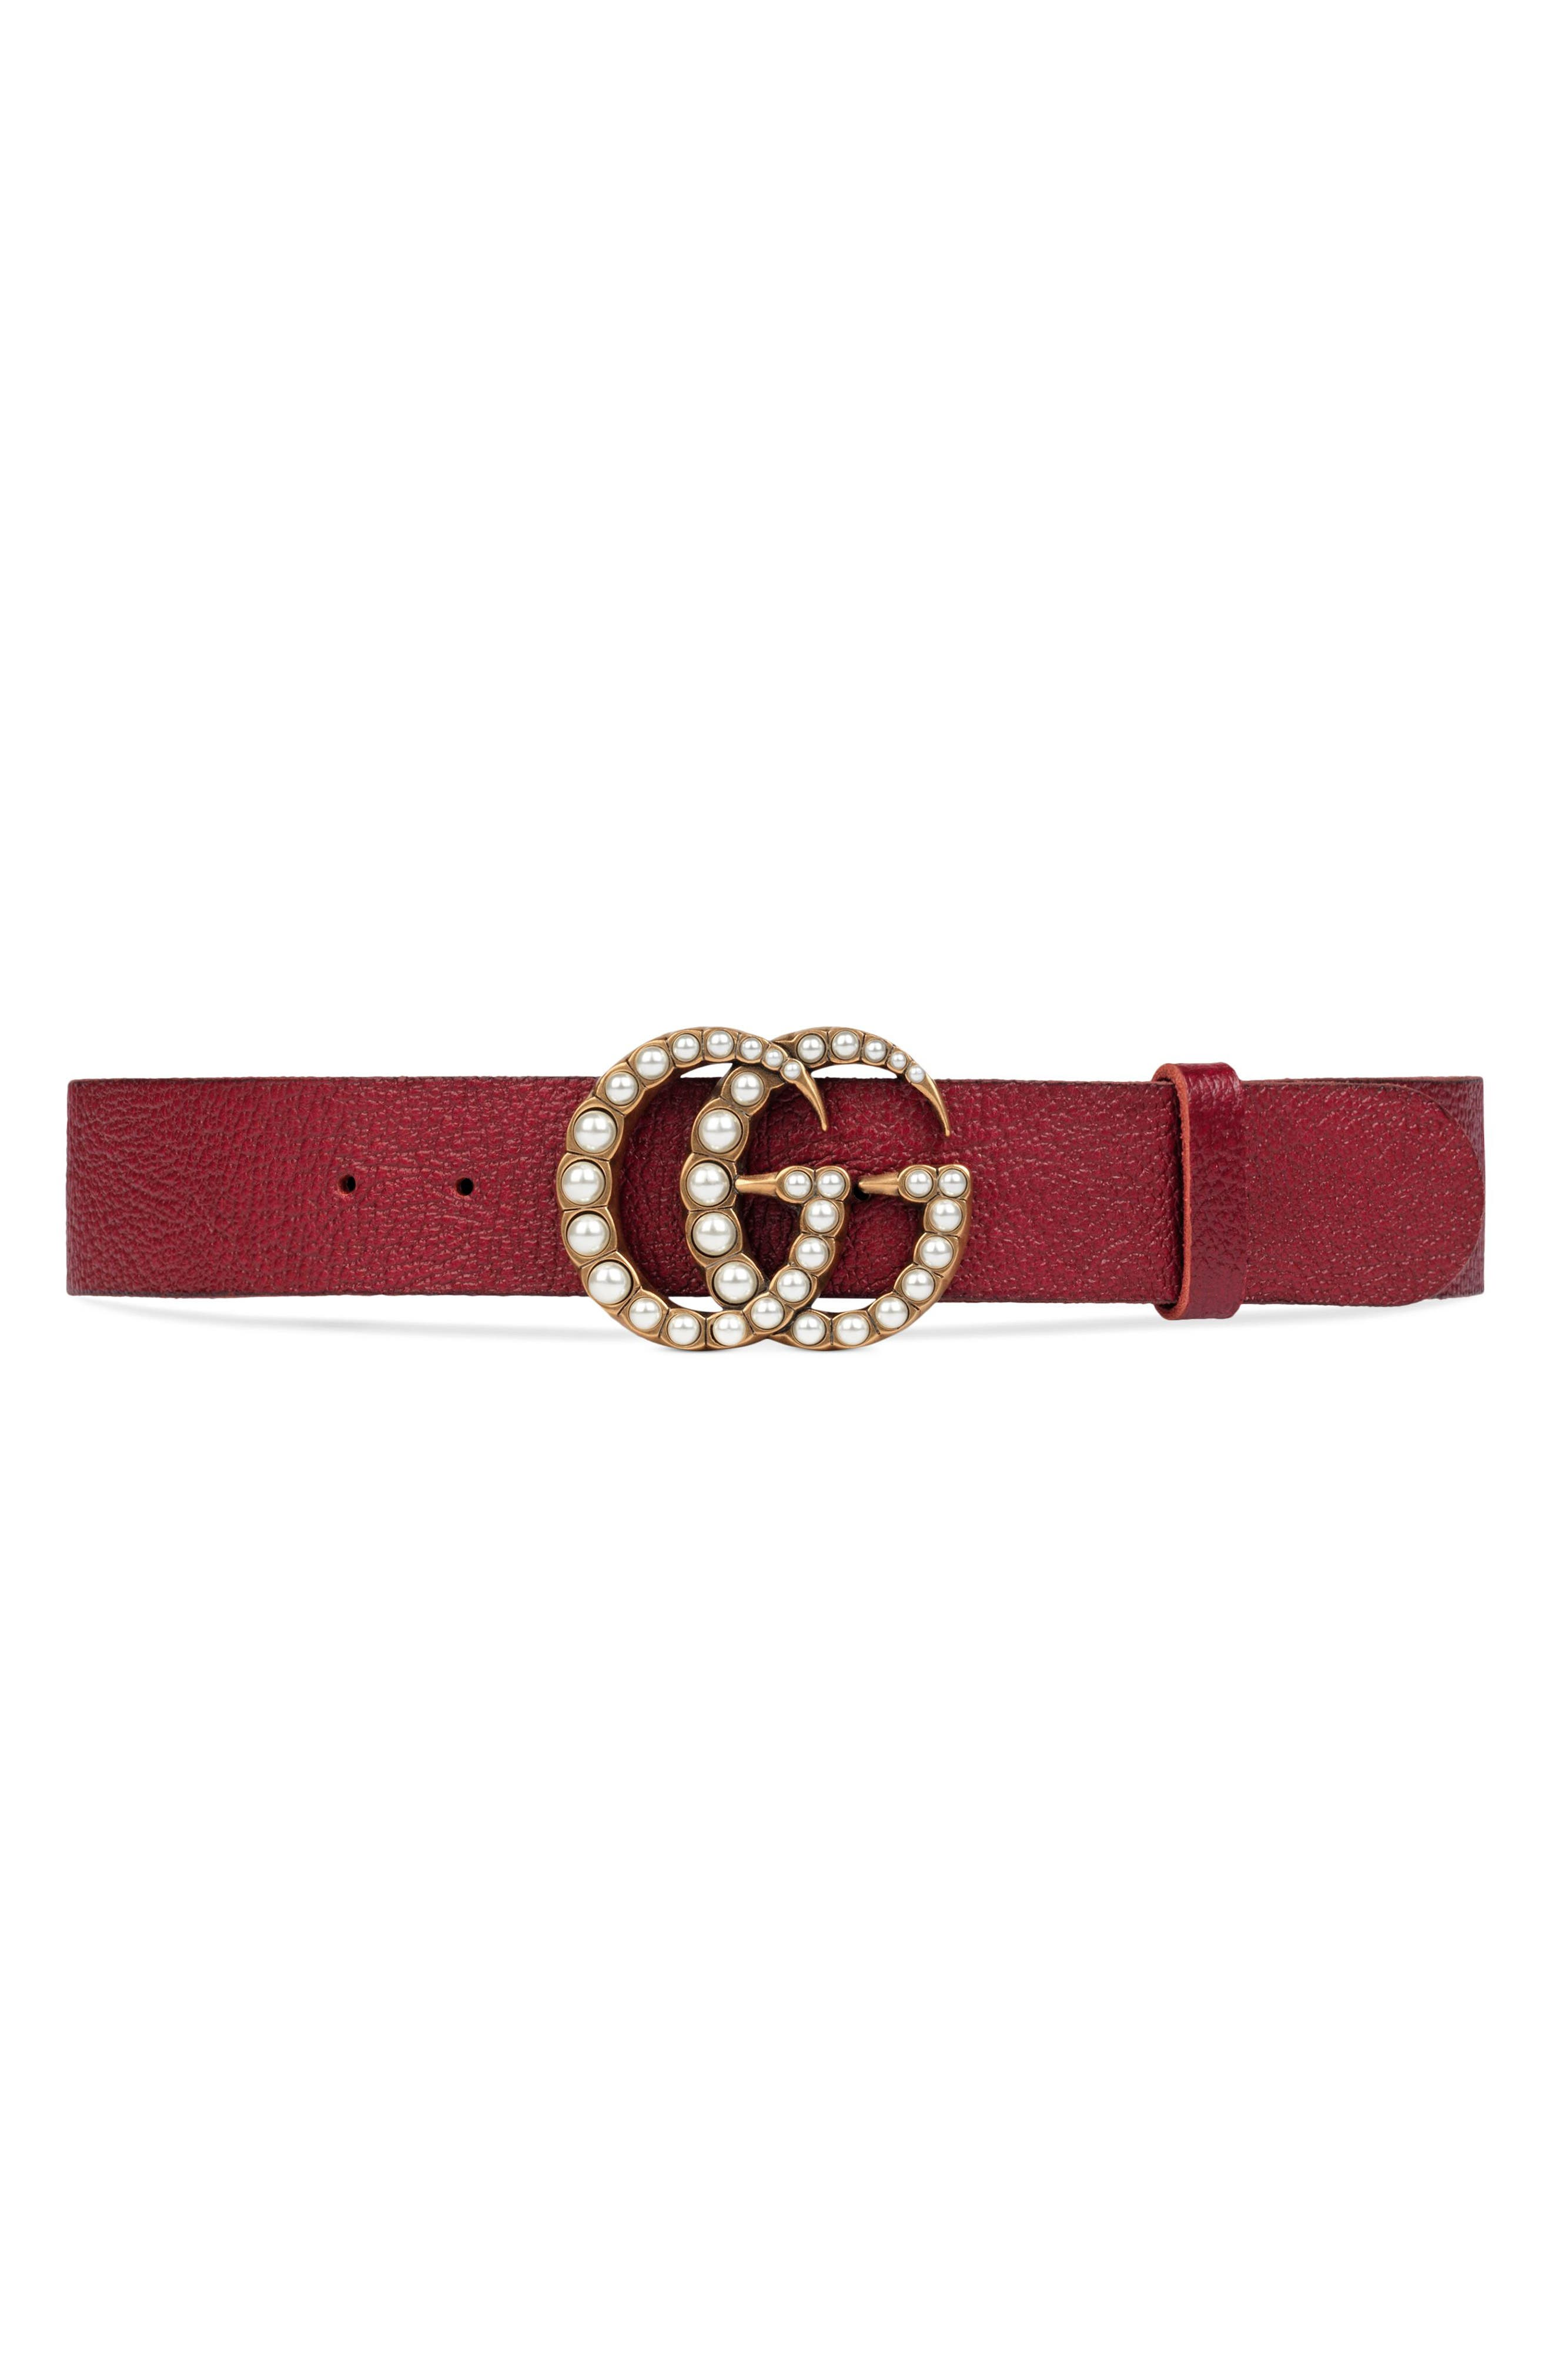 Alternate Image 1 Selected - Gucci Imitation Pearl Double-G Leather Belt